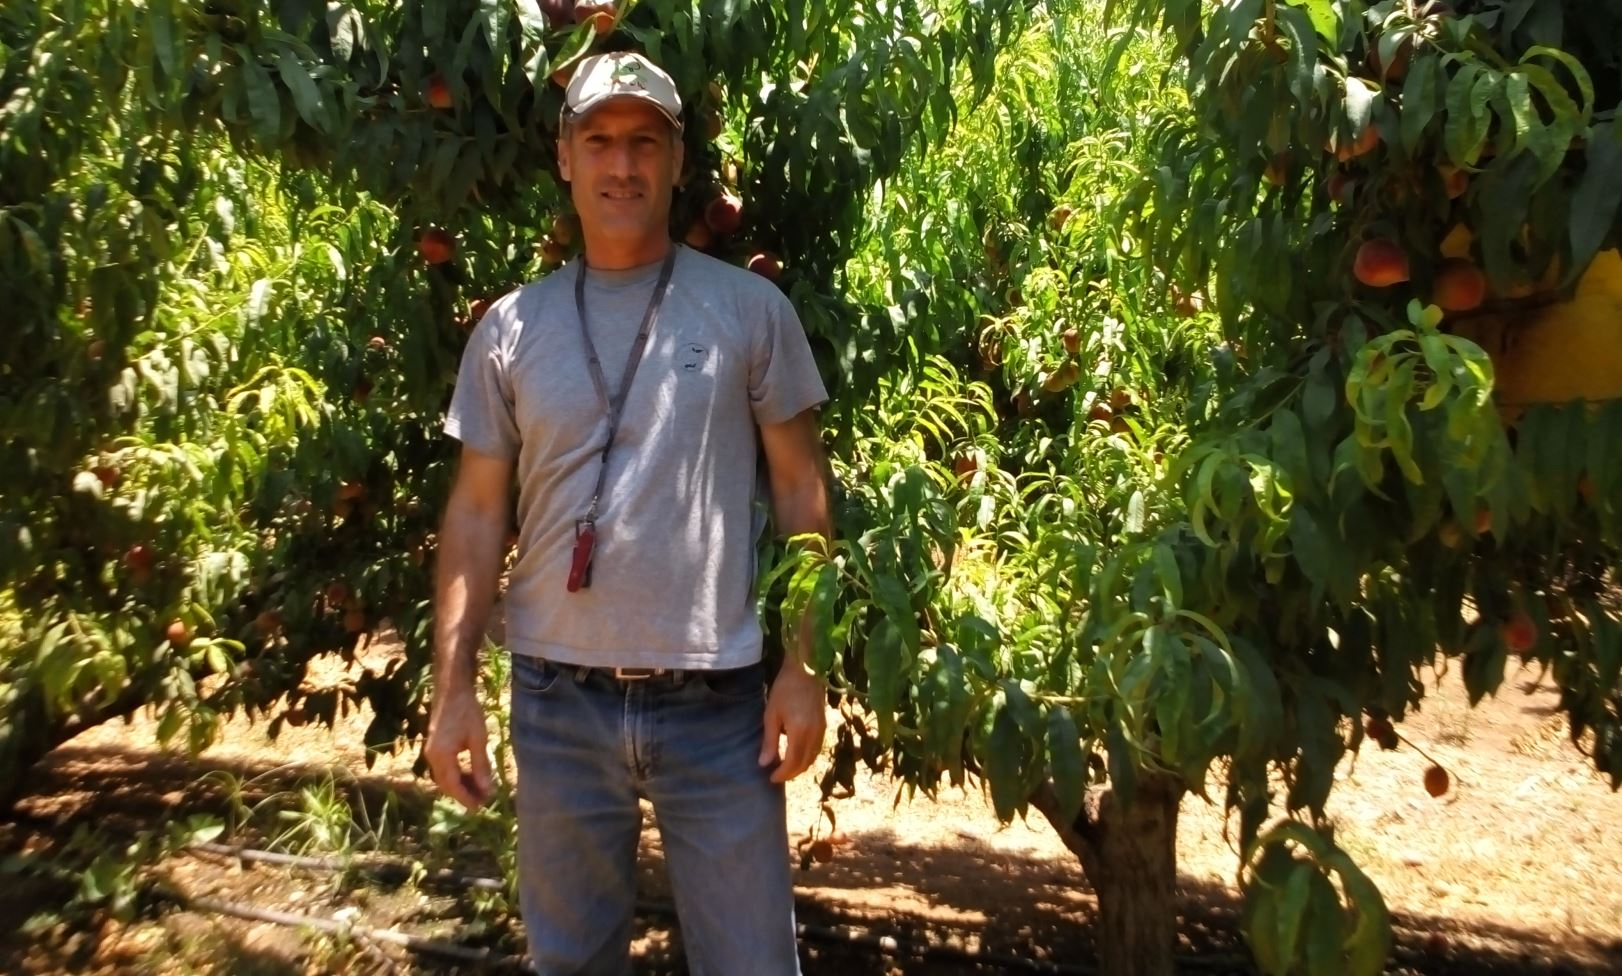 Biofeed CEO Nimrod Israely in the orchard. Photo: courtesy